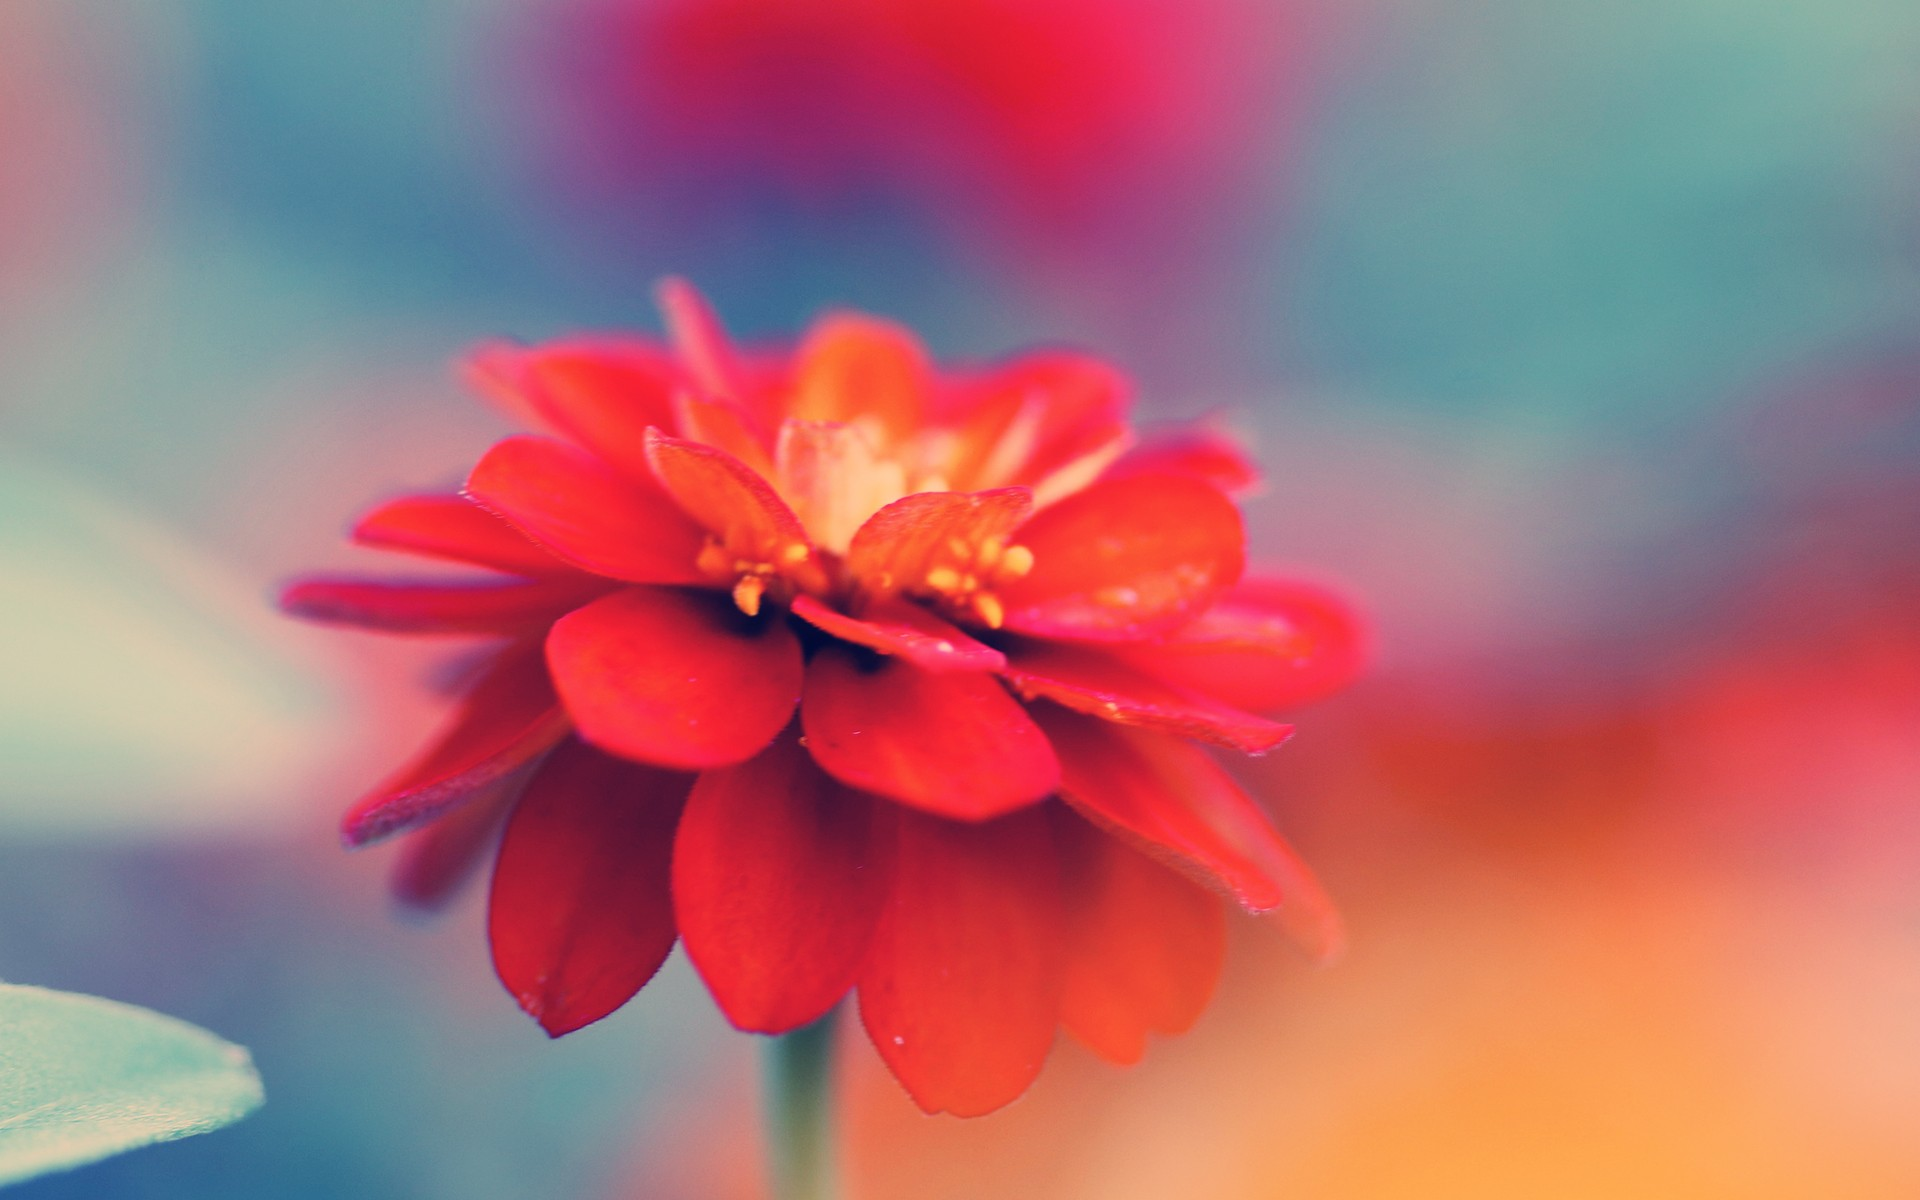 Daisy Iphone Wallpaper Red Mao Flower Macro Wallpapers Red Mao Flower Macro